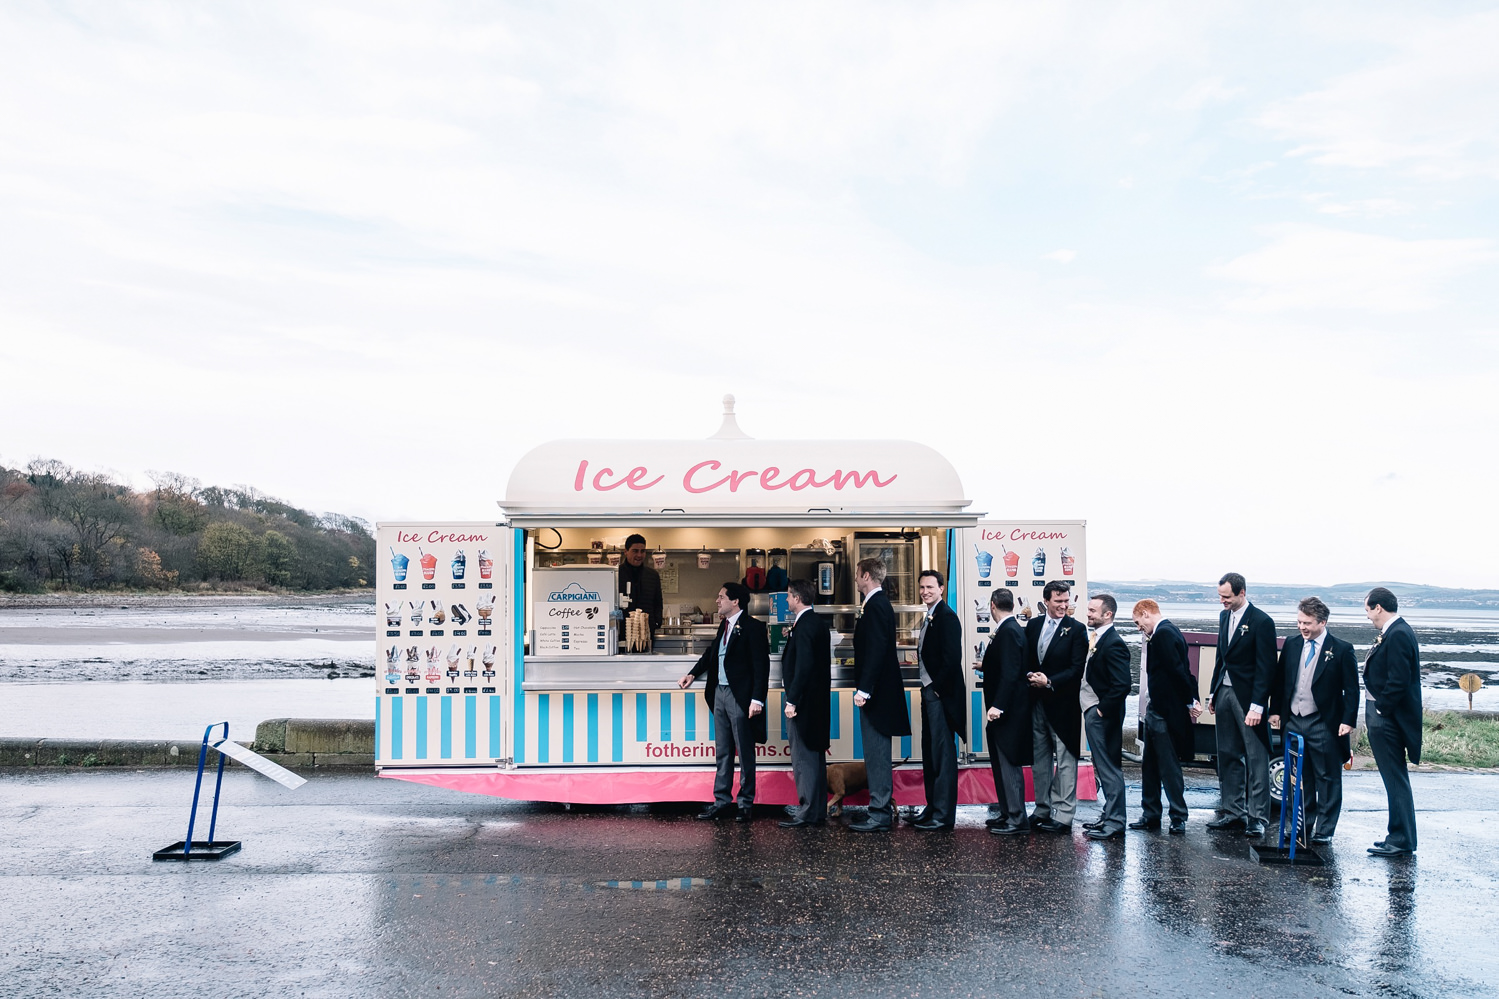 groomsmen all wearing morning suits lining up for ice cream